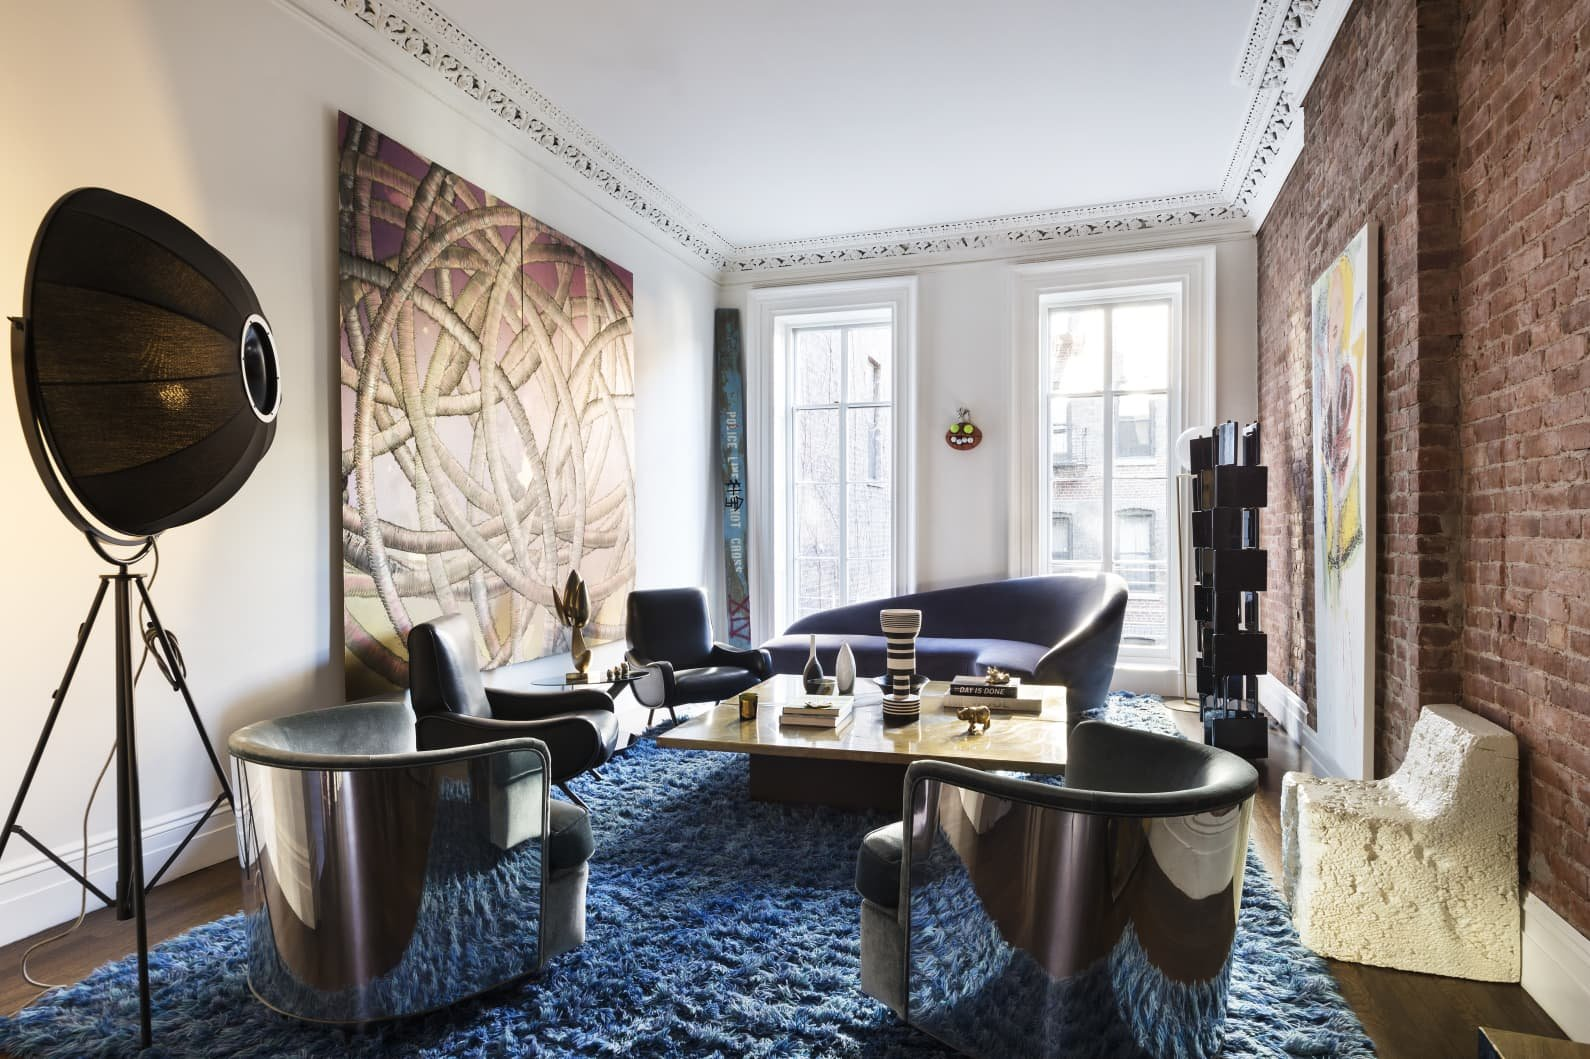 Apartamento Mary Kate Oslen en Manhattan estar con lampara de Fortuny